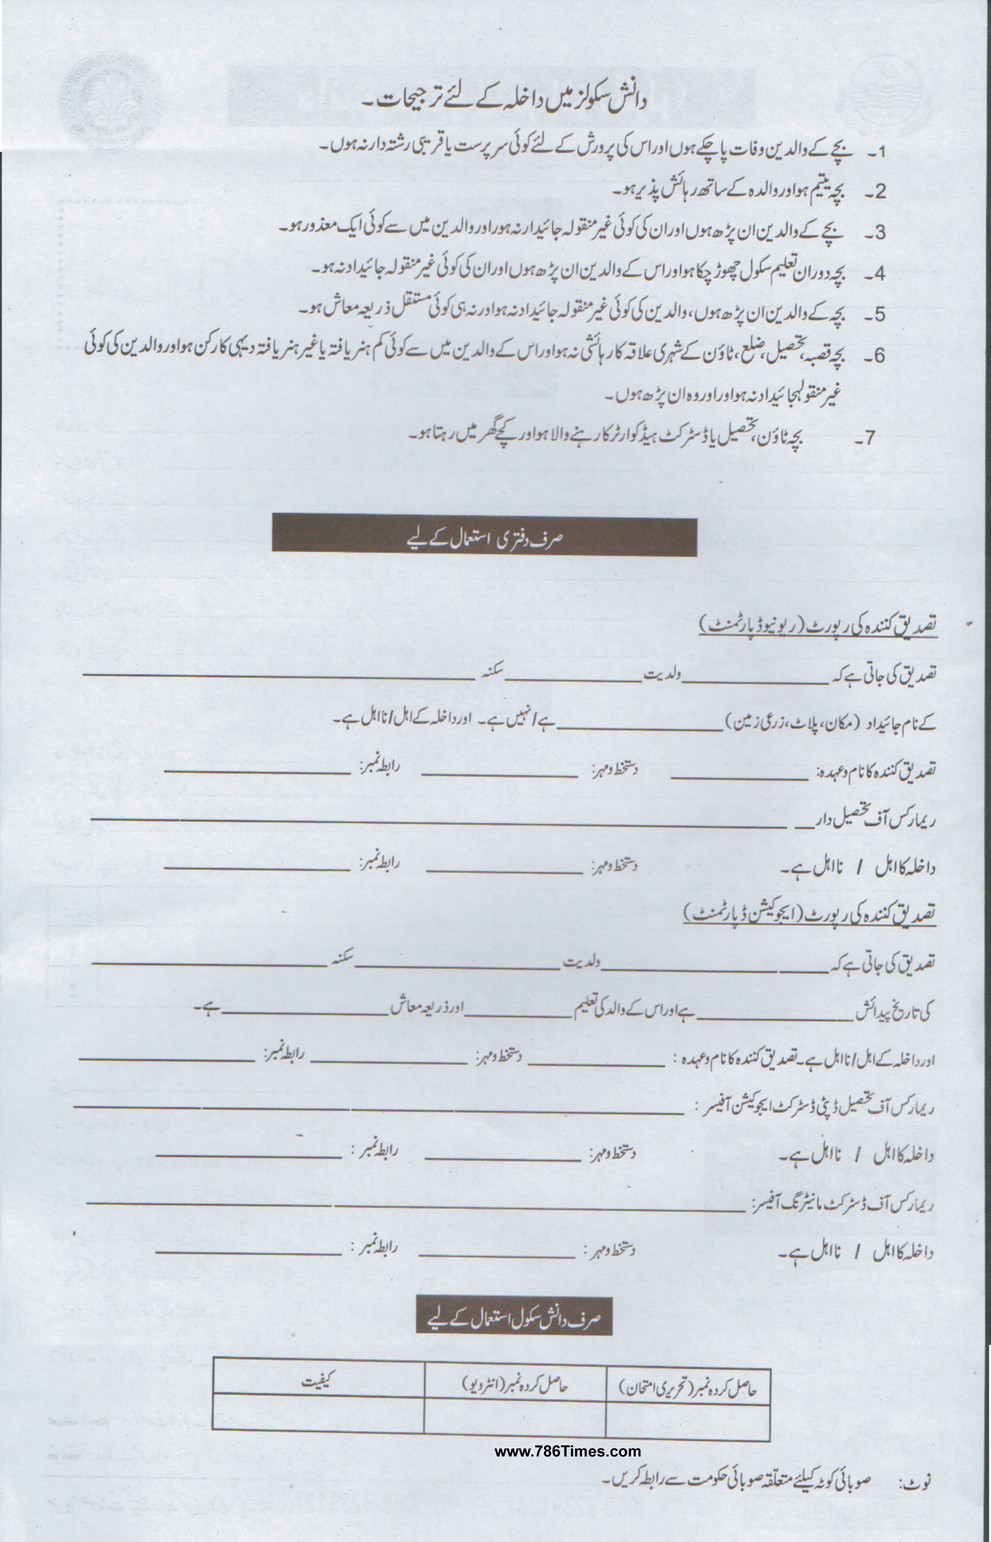 Danish School Admission Form 2015 for Class 6th